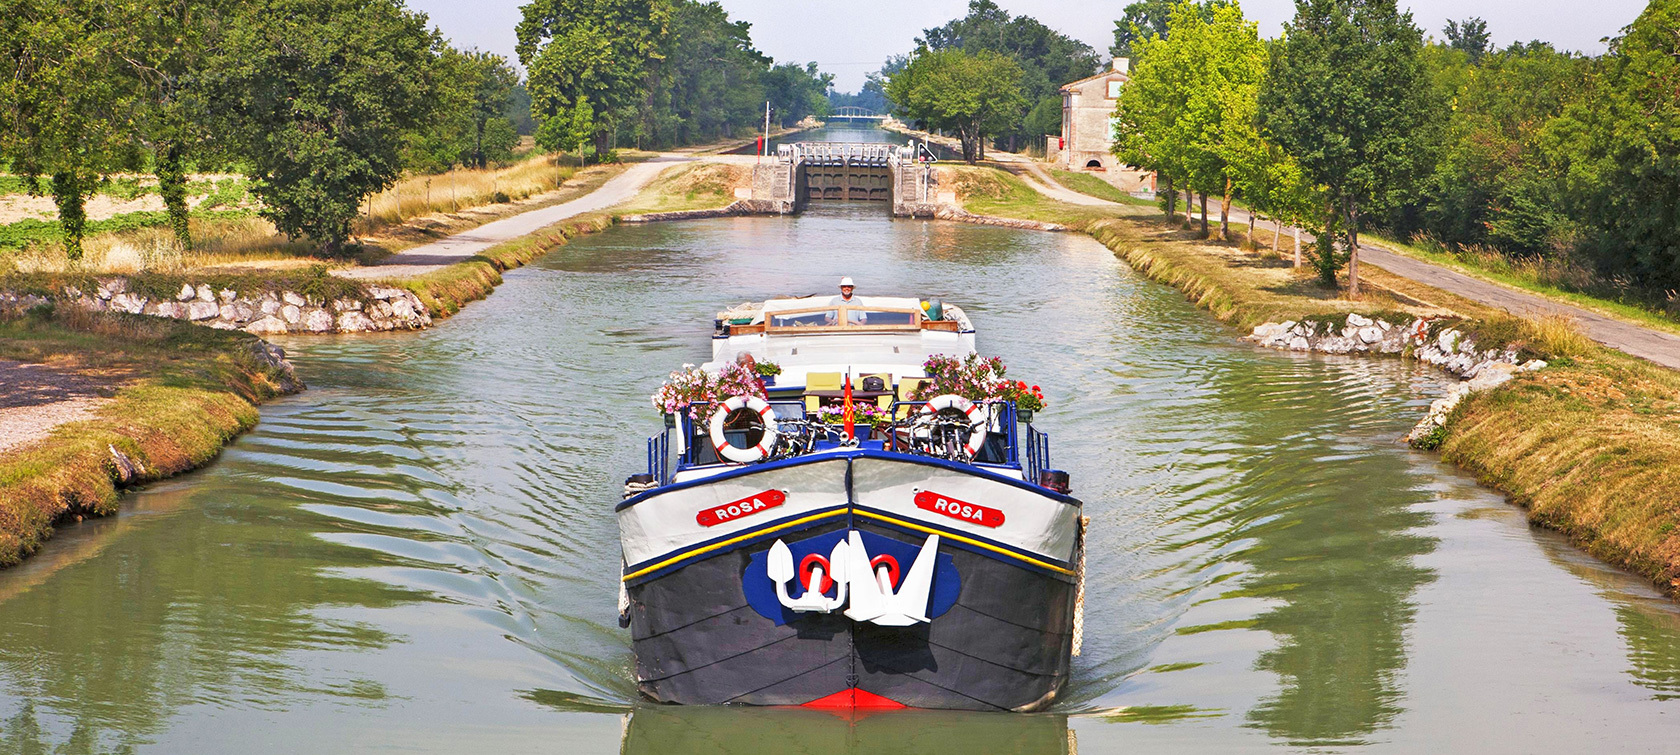 the impact of the river cruise Two diametrically-opposed events can affect the smooth running of a river cruise on the one hand, too little water in the river means vessels can't sail because they could run aground.